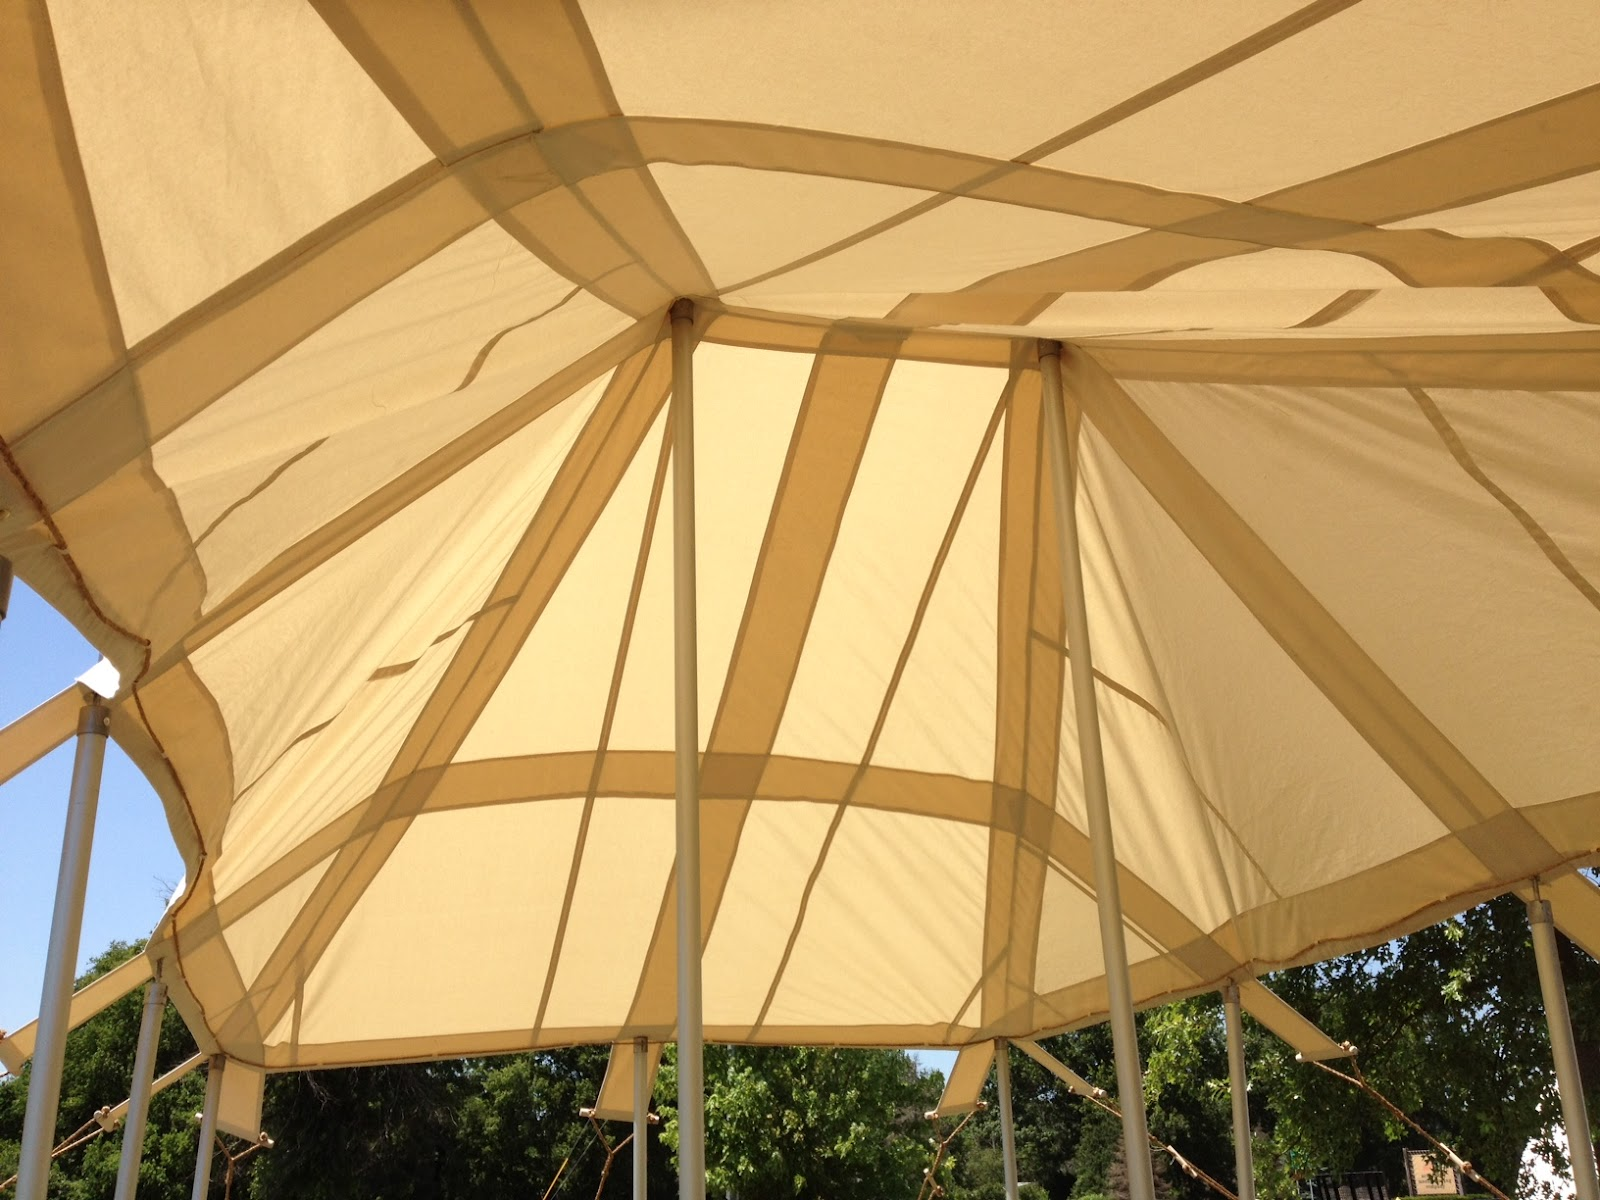 Bedouin Tent from Armbruster & Bedouin Tent from Armbruster | Armbruster Tent Maker